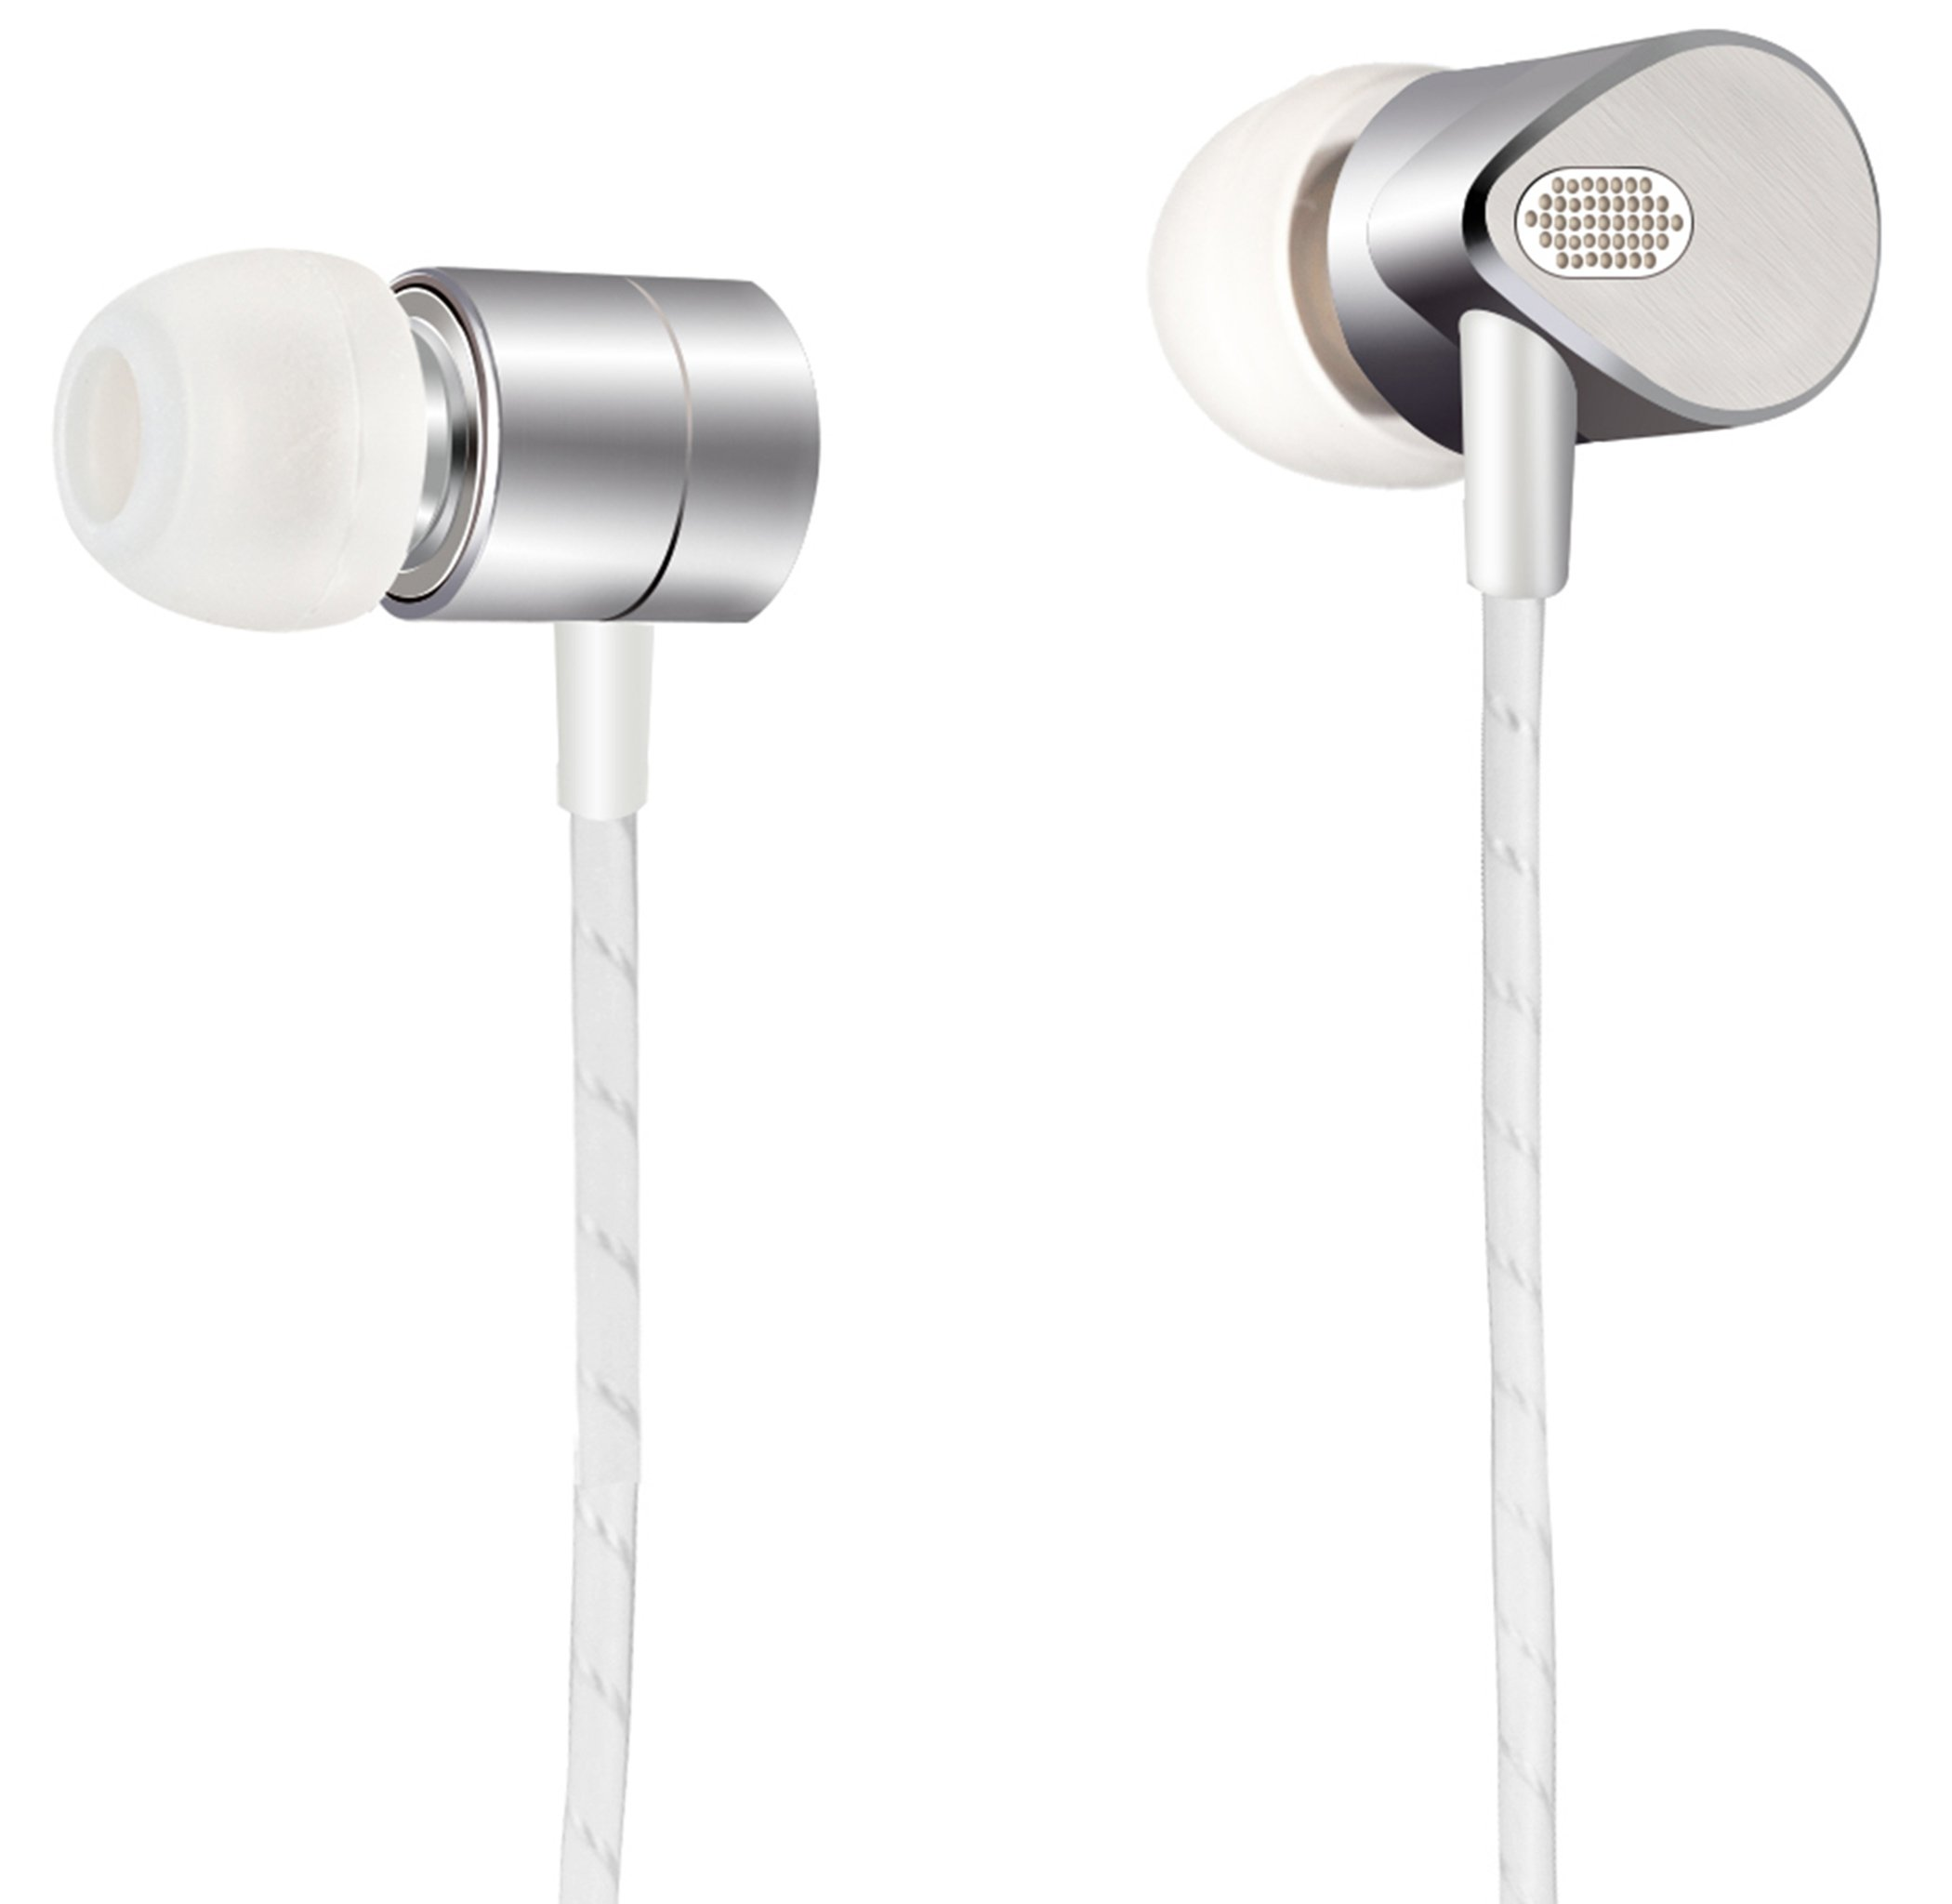 Silver Metal In-ear Headphones with Balance Armature Technology for Deep Bass and Hifi Sound Quality Noise isolating Earphones Earbuds with Mic Volume Control for iPhone Android Cable Tangle Free